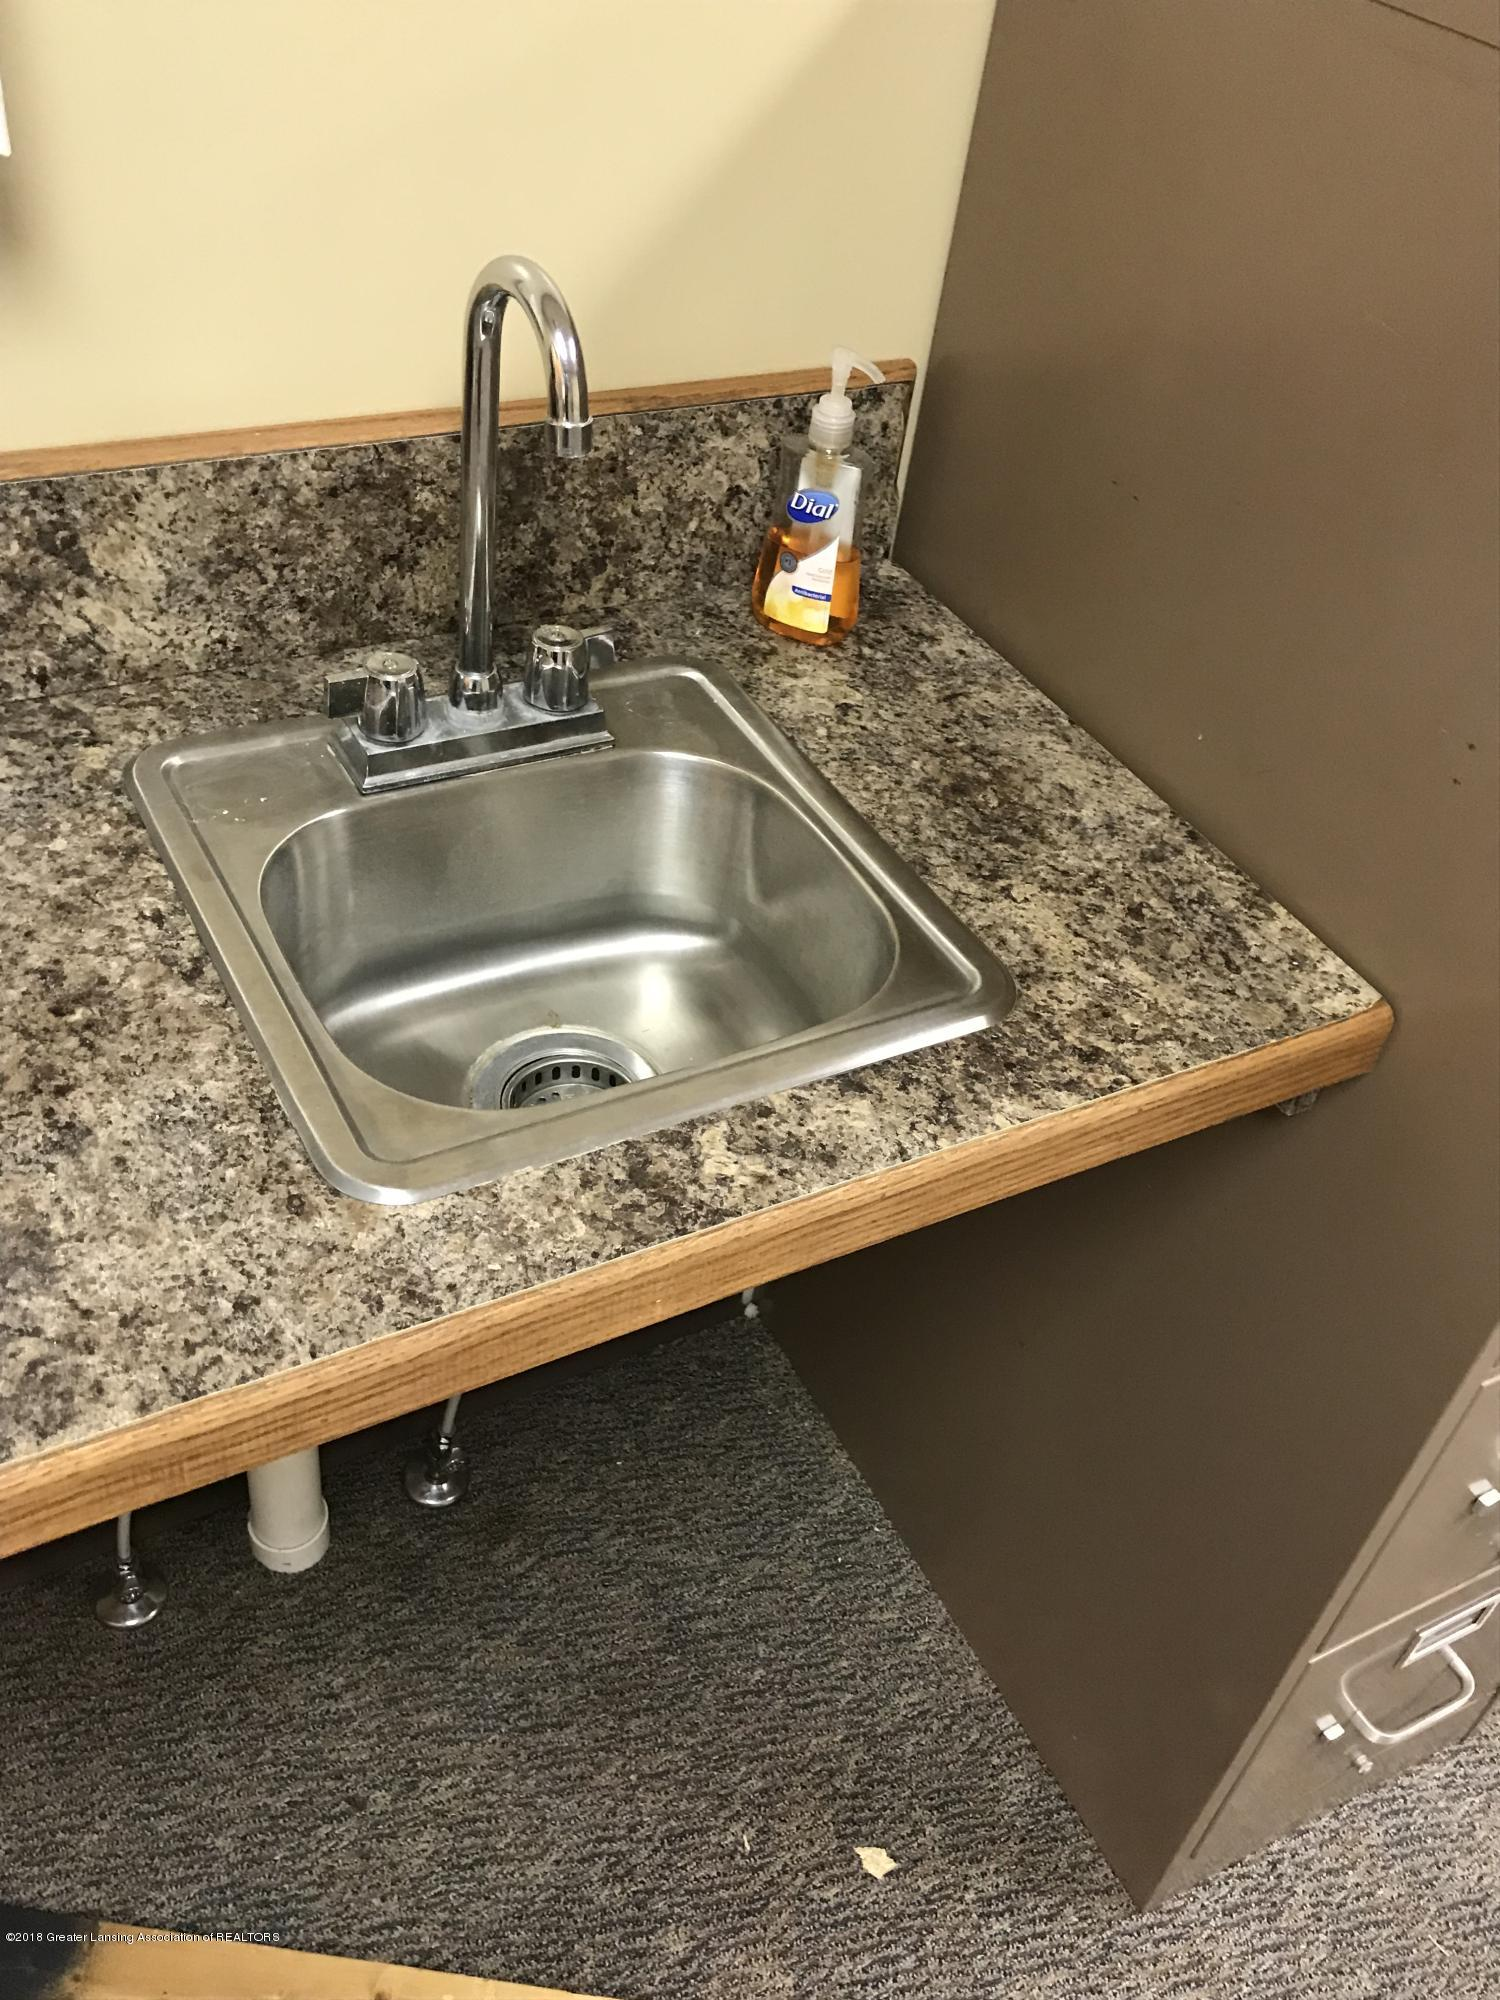 228 S Cochran Ave - 21 Sink Counter - 22